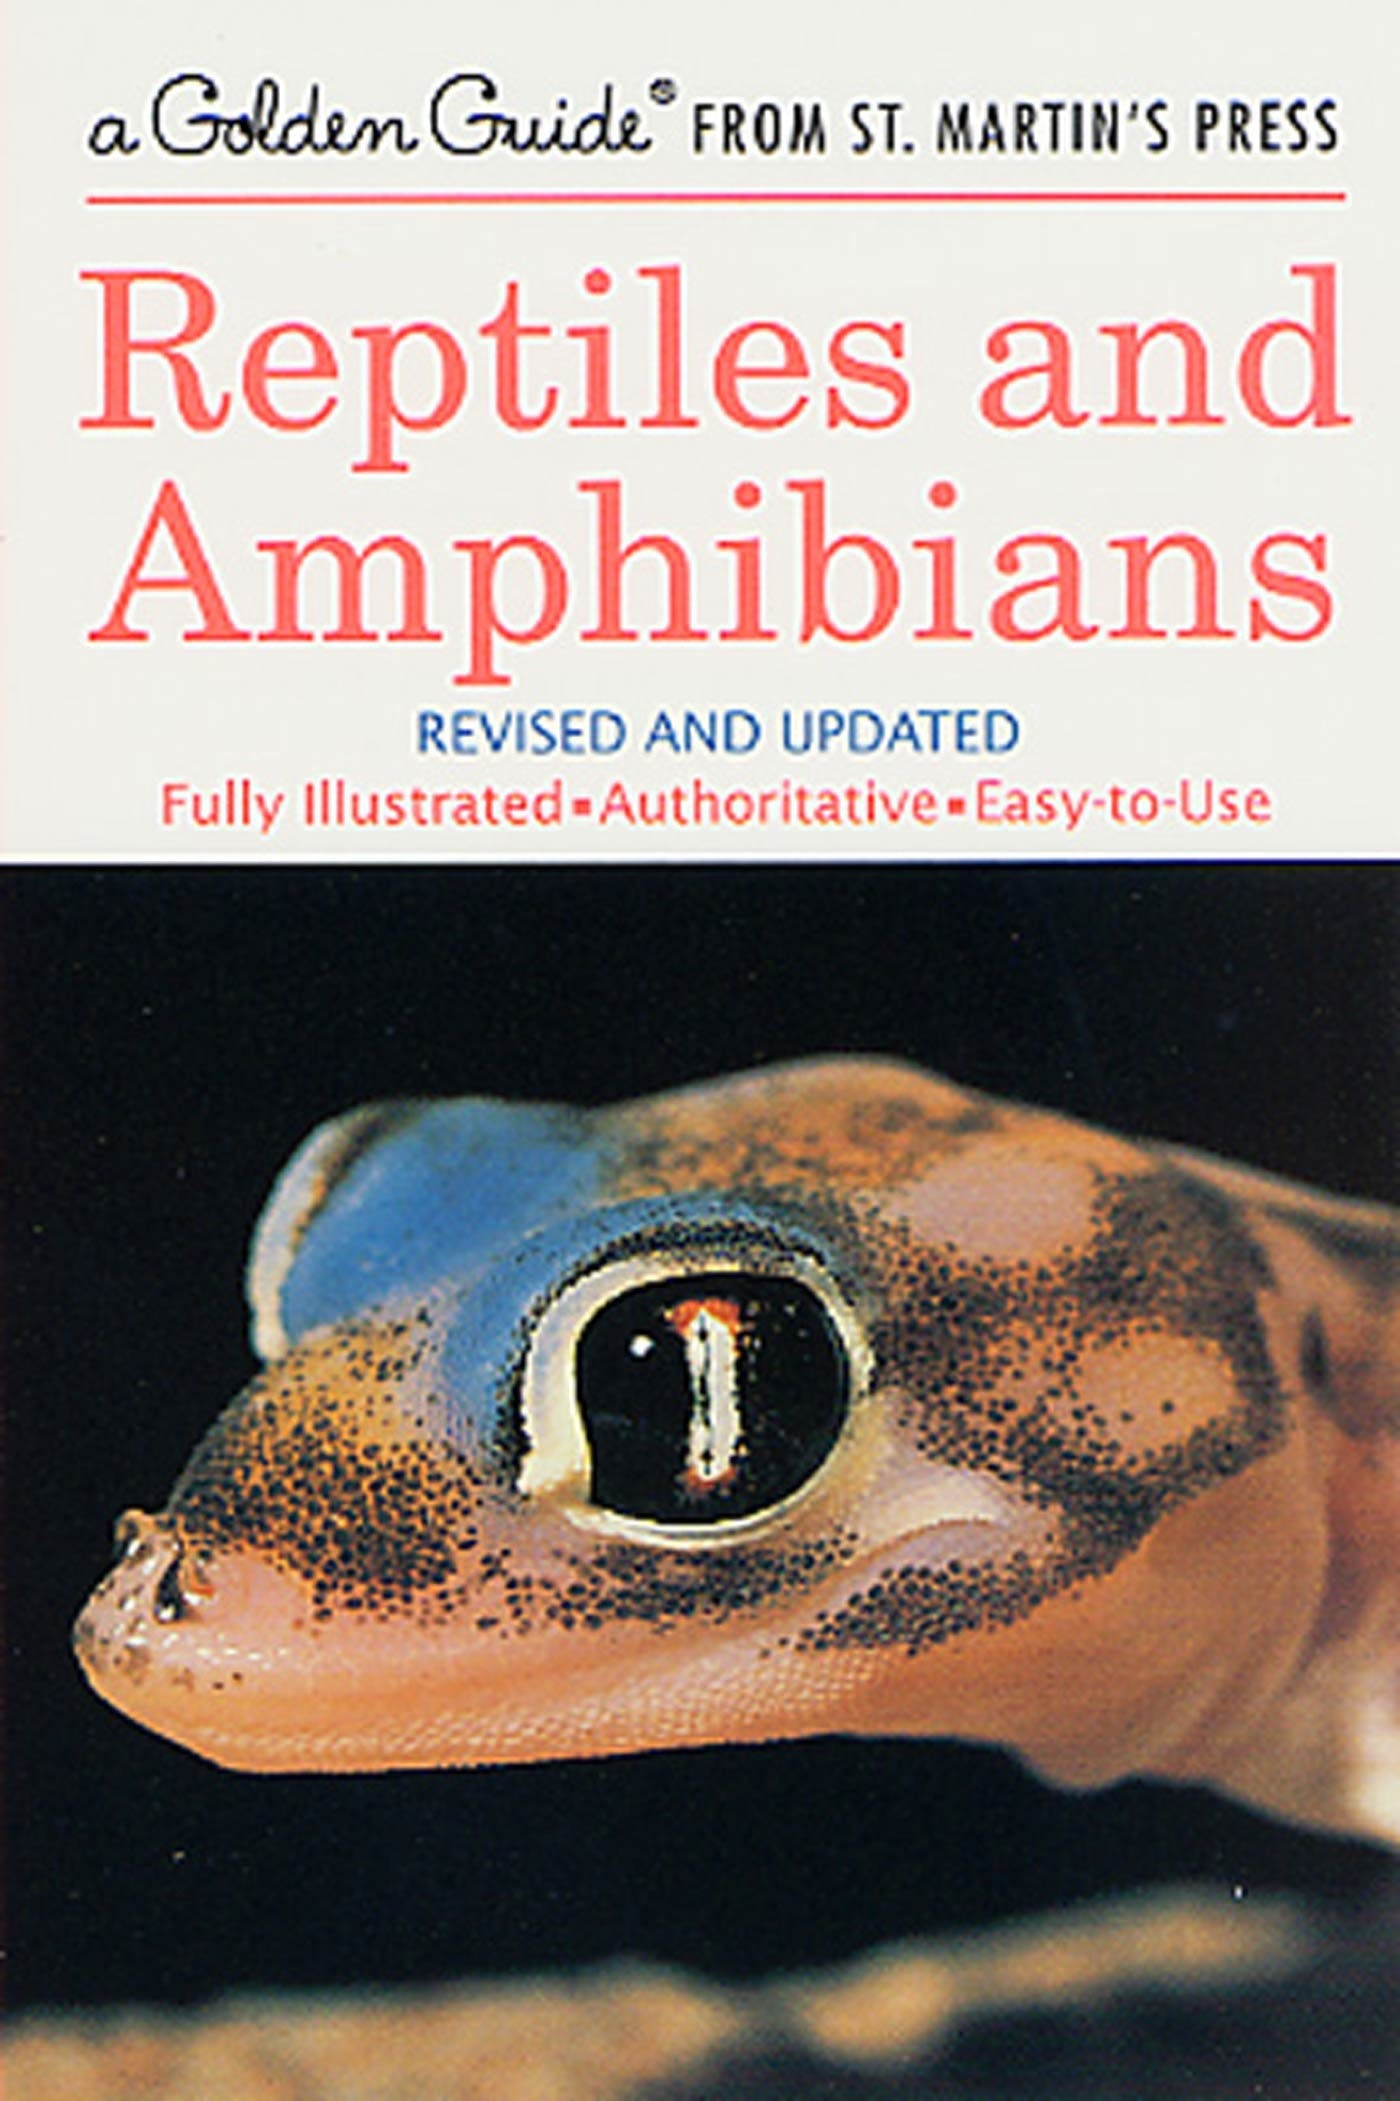 Image of Reptiles and Amphibians